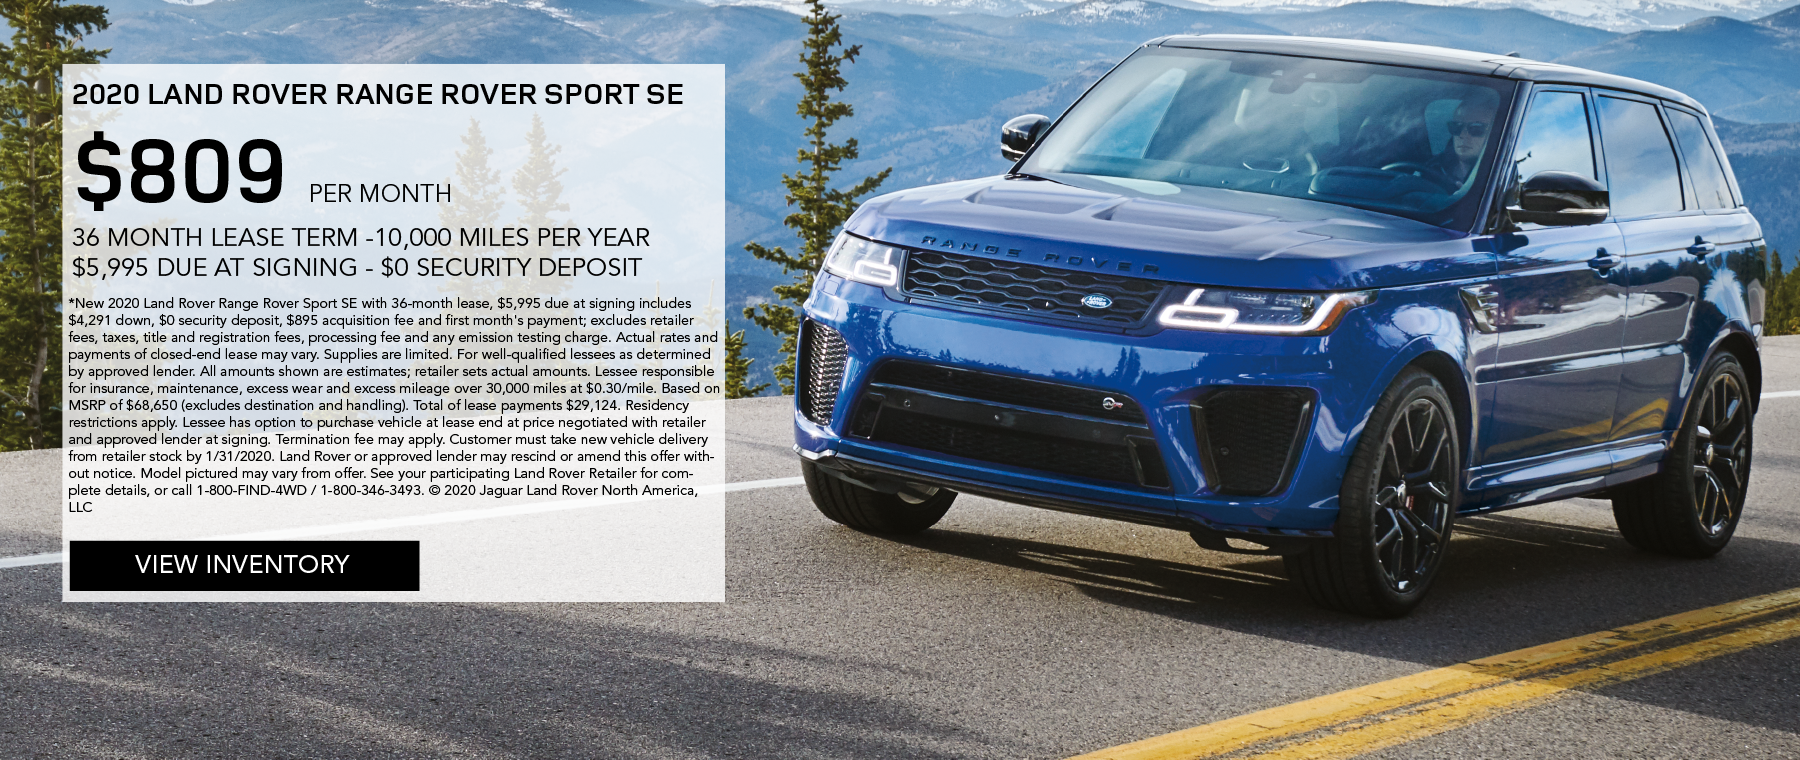 2020 RANGE ROVER SPORT SE_$809 PER MONTH_$5,995 DUE AT SIGNING_$0 SECURITY DEPOSIT_36 MONTH LEASE TERM_10,000 MILES PER YEAR_EXPIRES JANUARY 31, 2020_VIEW INVENTORY_BLUE RANGE ROVER SPORT DRIVING ON ROAD OVERLOOKING MOUNTAIN